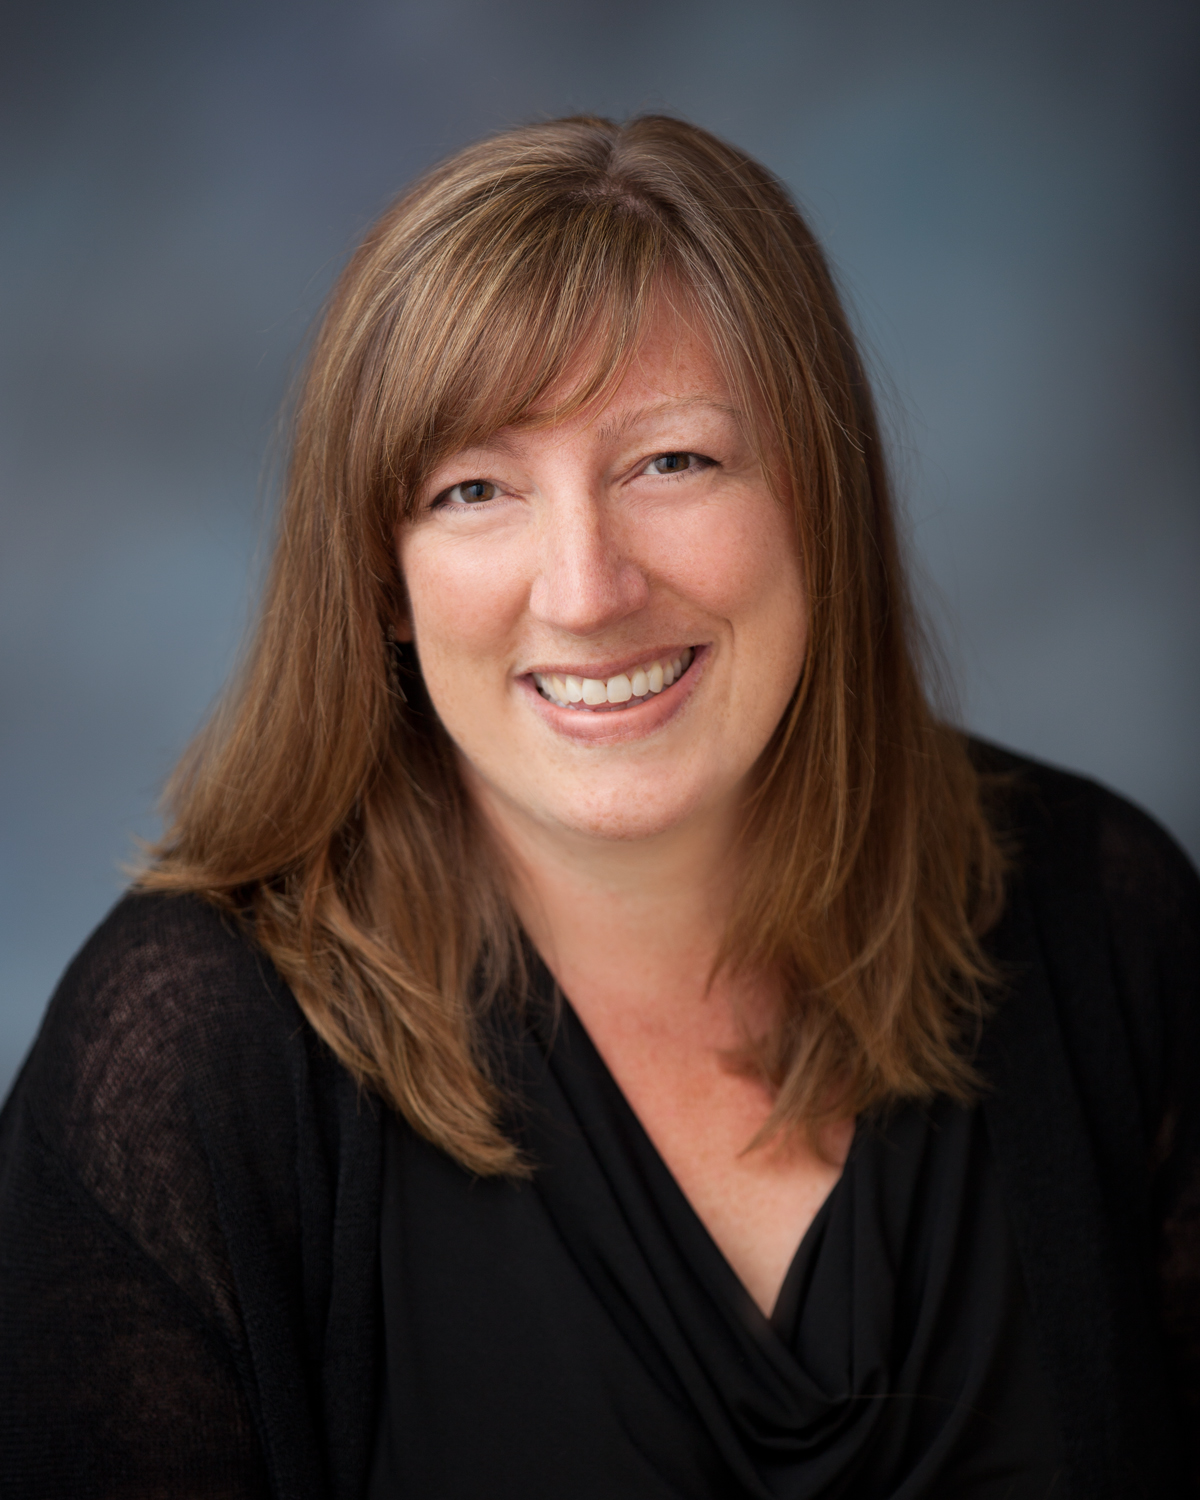 Sandy Karp, CNM, MN - Nurse-Midwife in Portland, OR and Hillsboro, OR